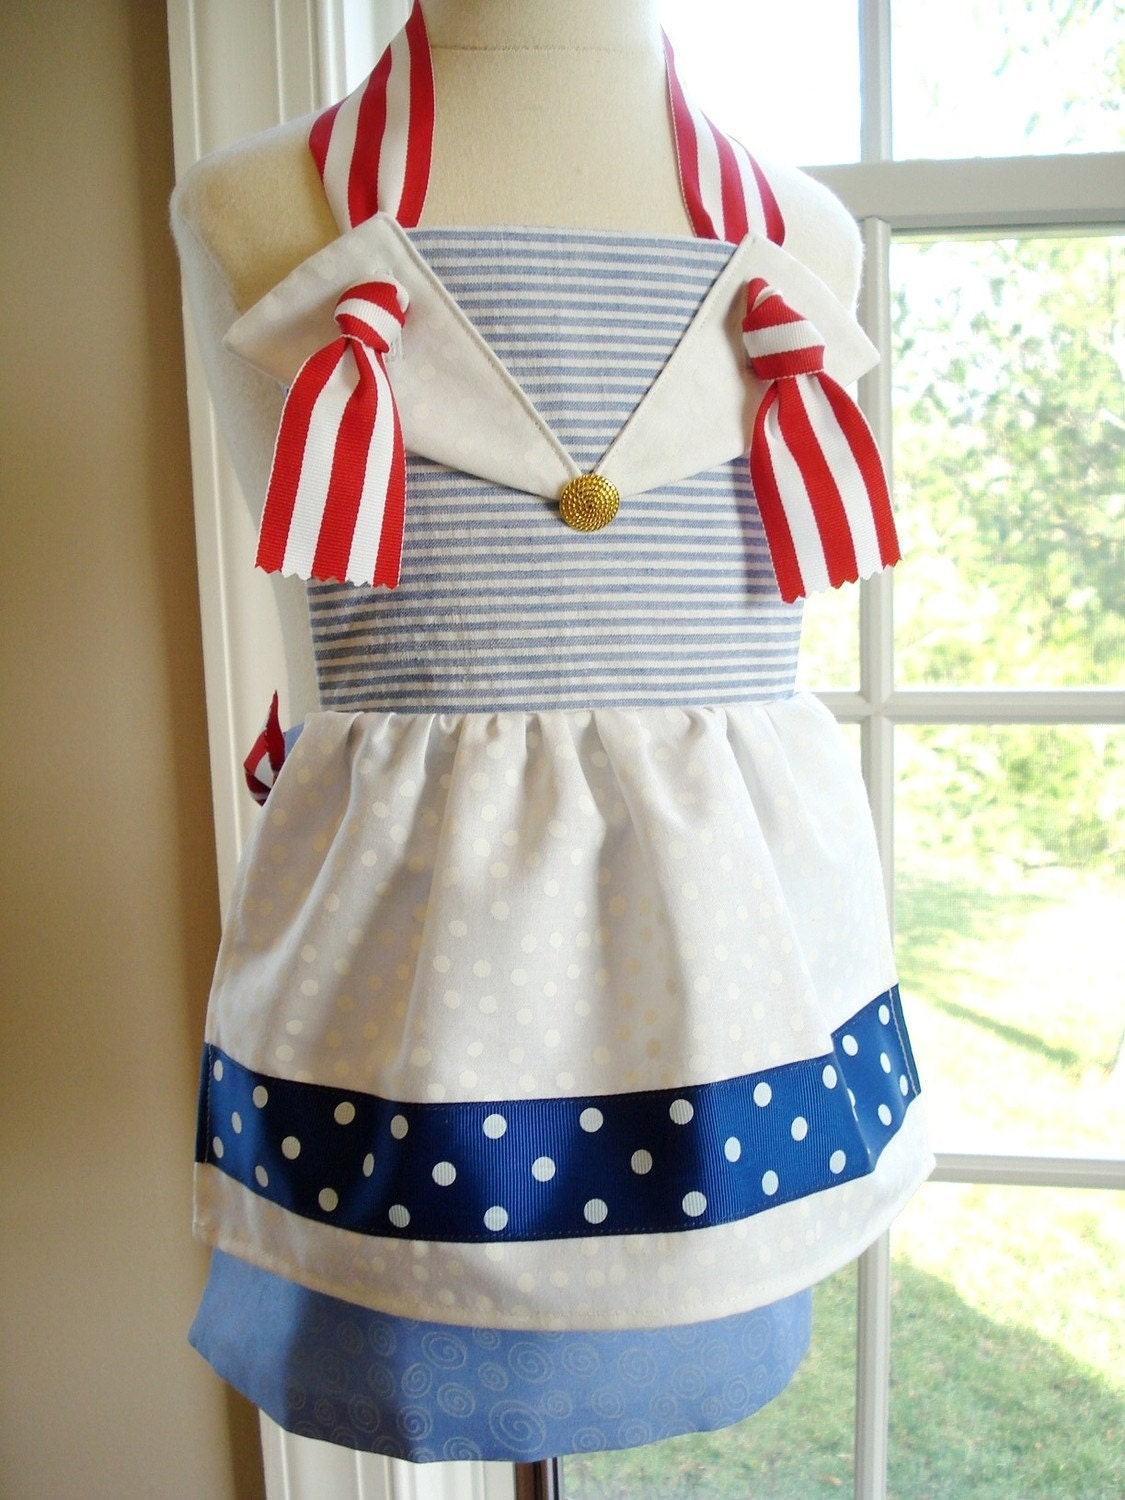 SALE - PDF ePattern - Sailor and Clown Knot Aprons for Children - Three Sizes